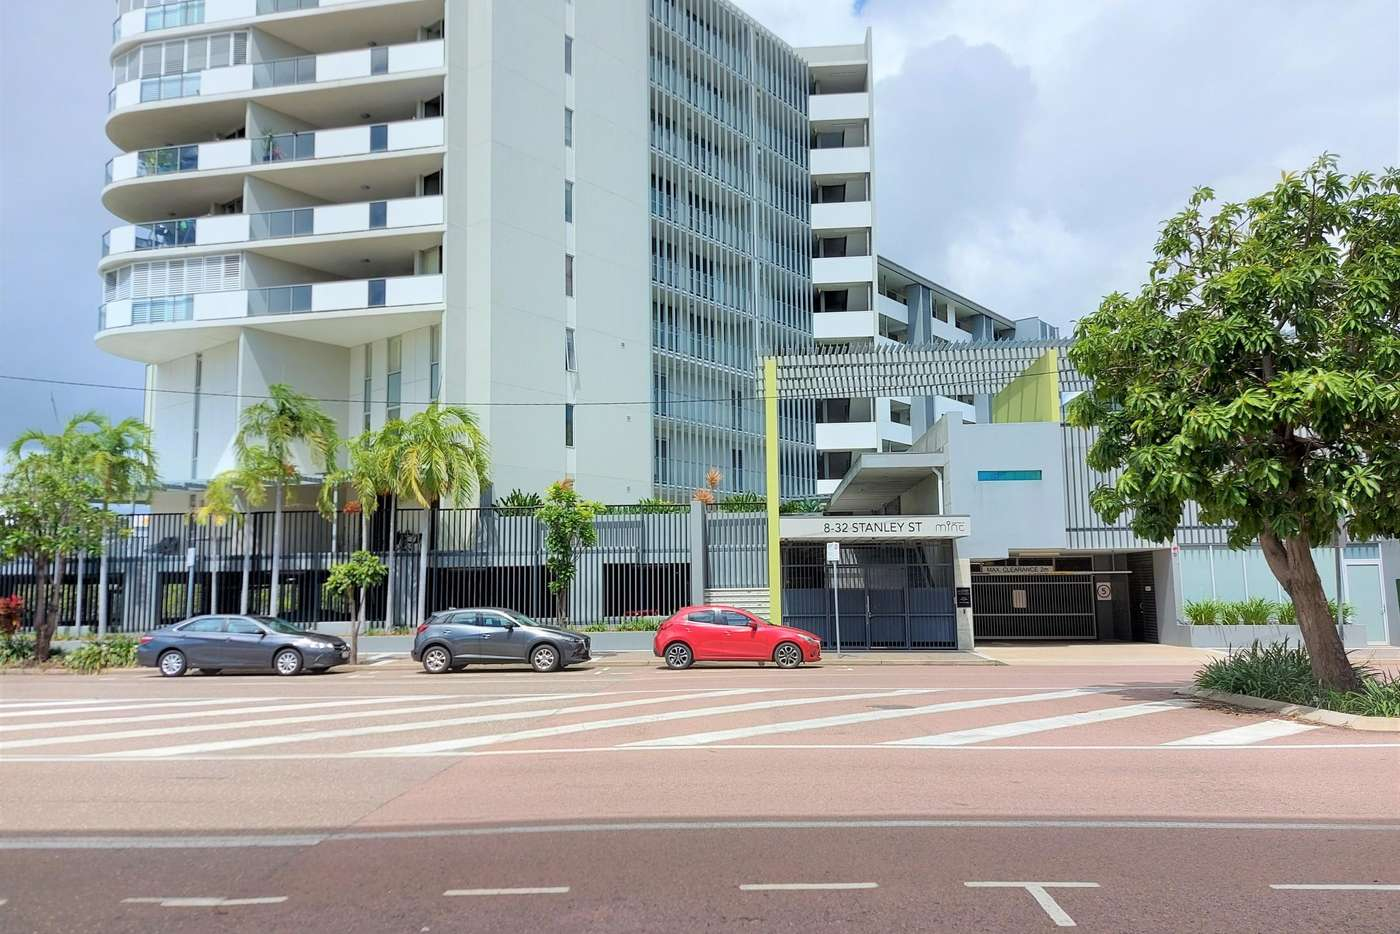 Main view of Homely unit listing, 53/8-32 Stanley St, Townsville City QLD 4810